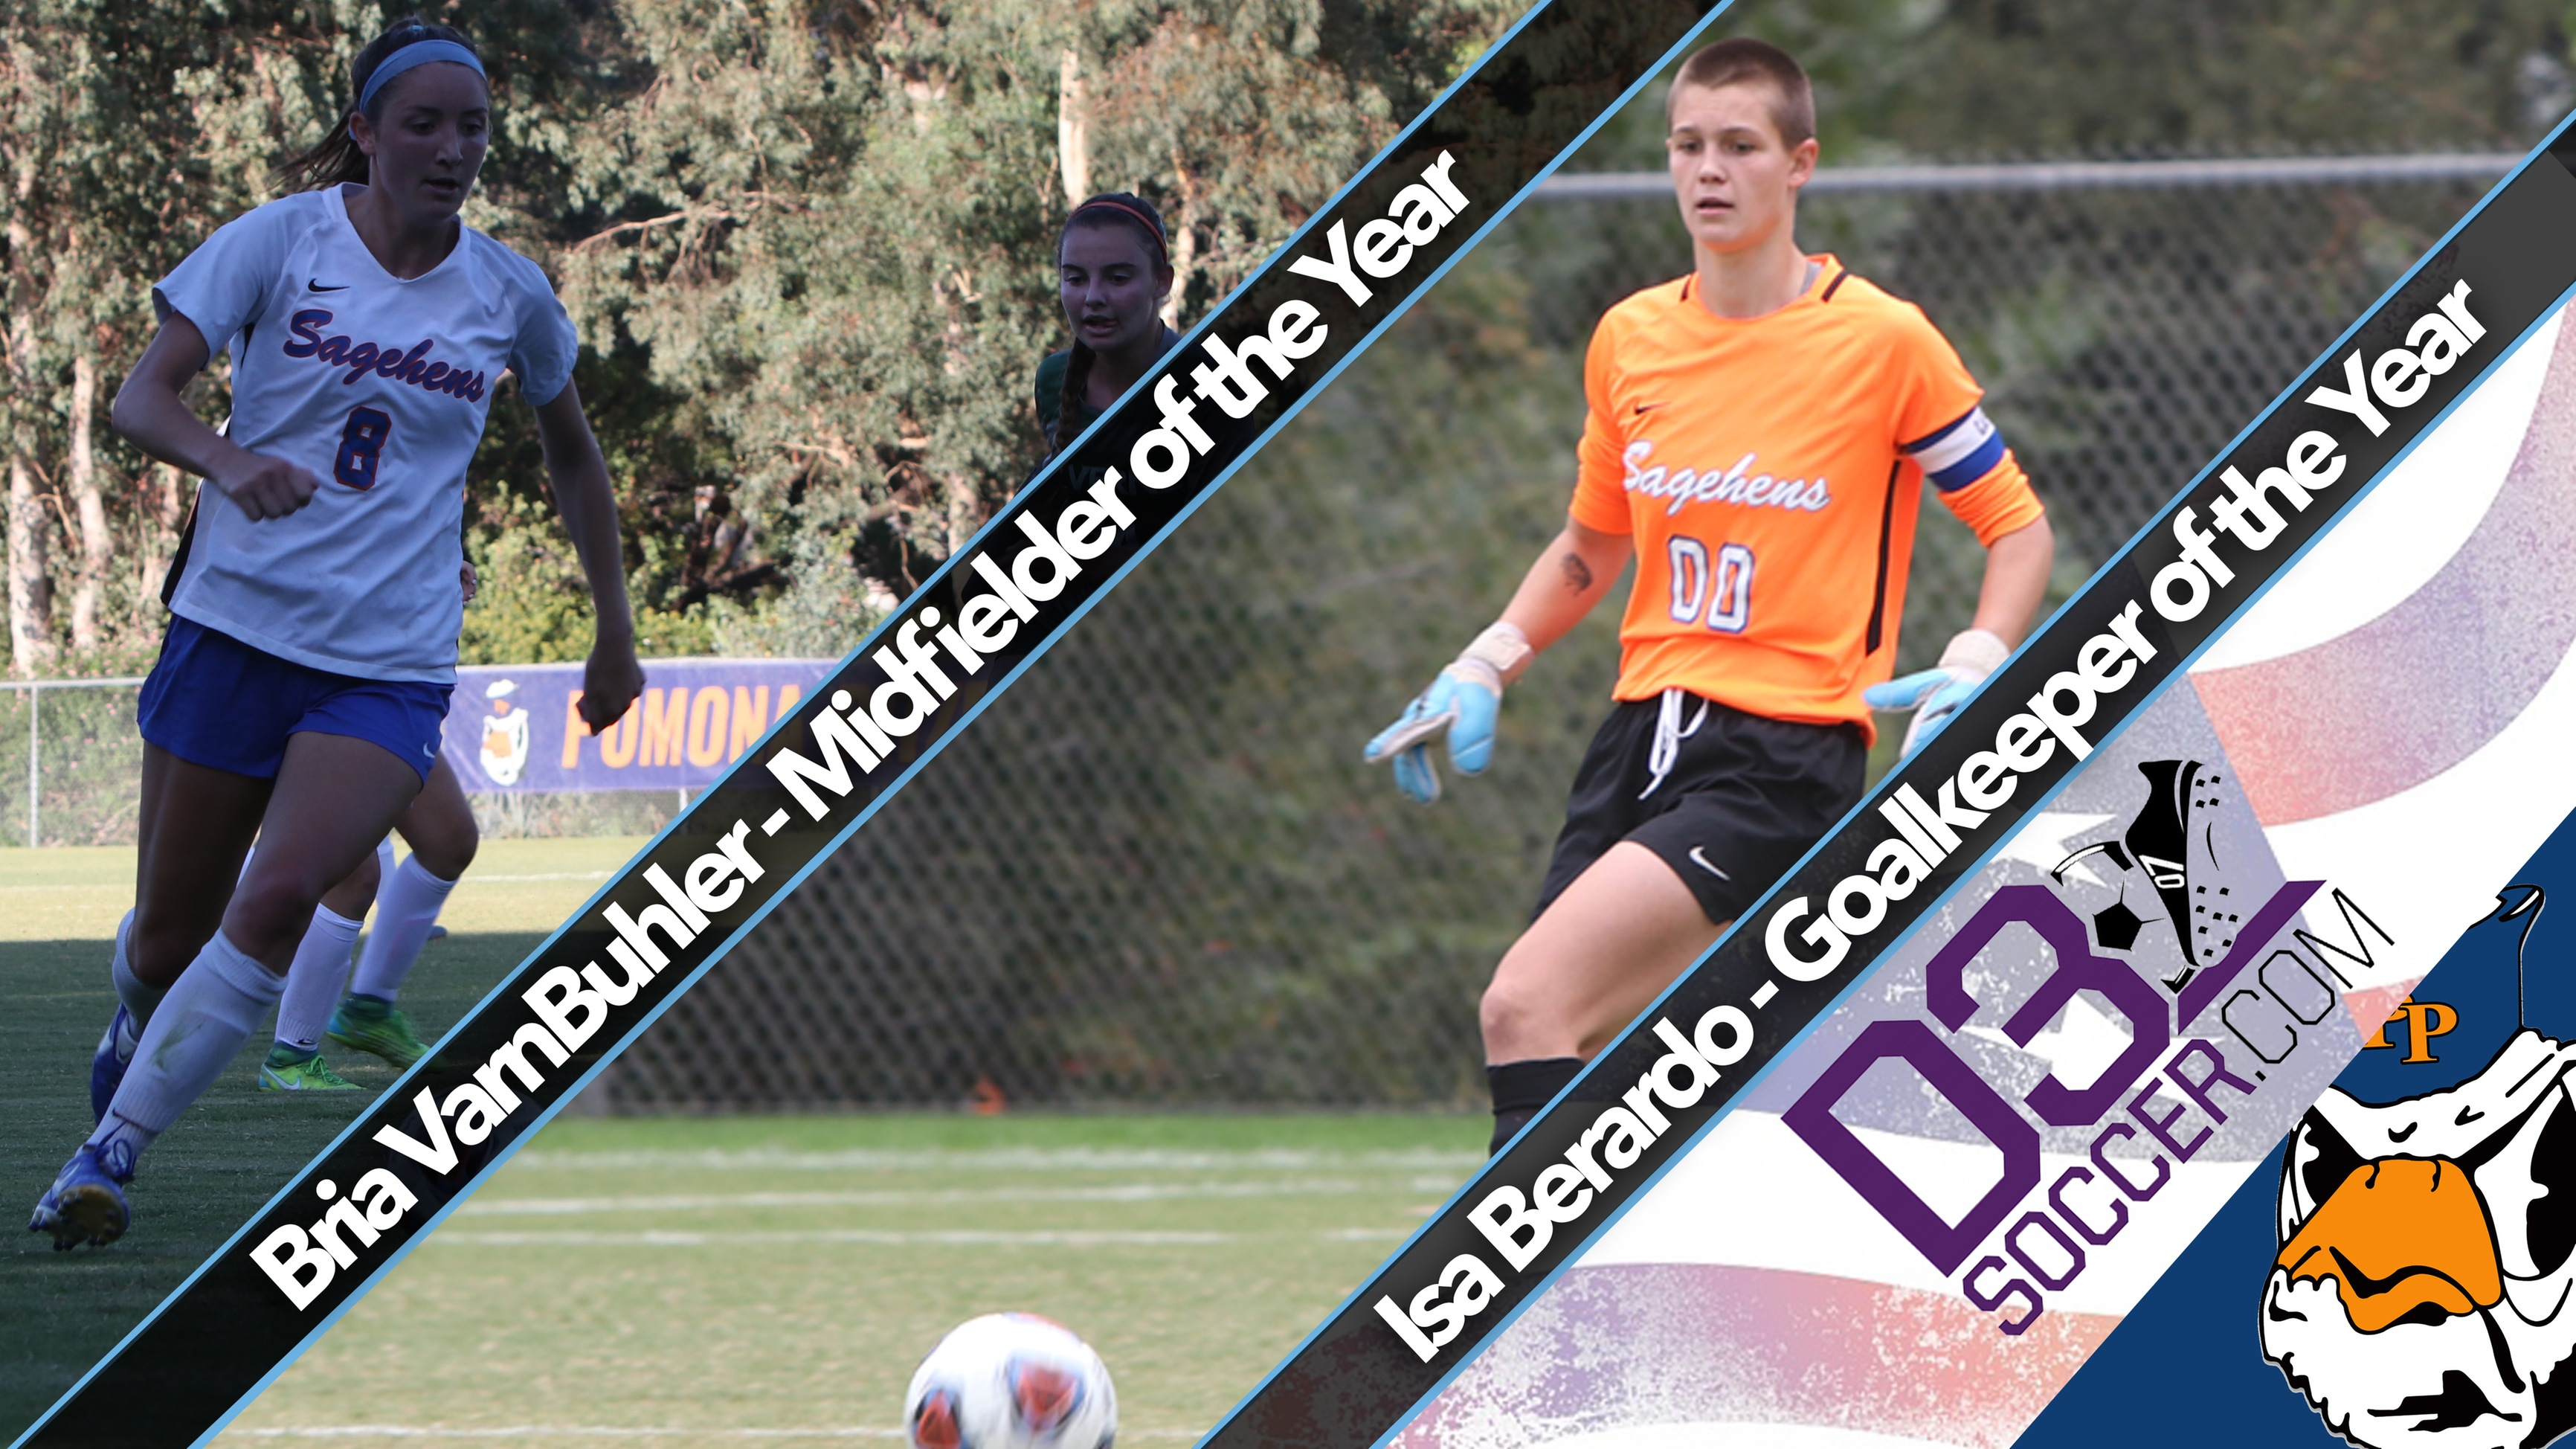 Pomona-Pitzer: VarnBuhler, Berardo And Lau Headline D3soccer.com All-American Honors